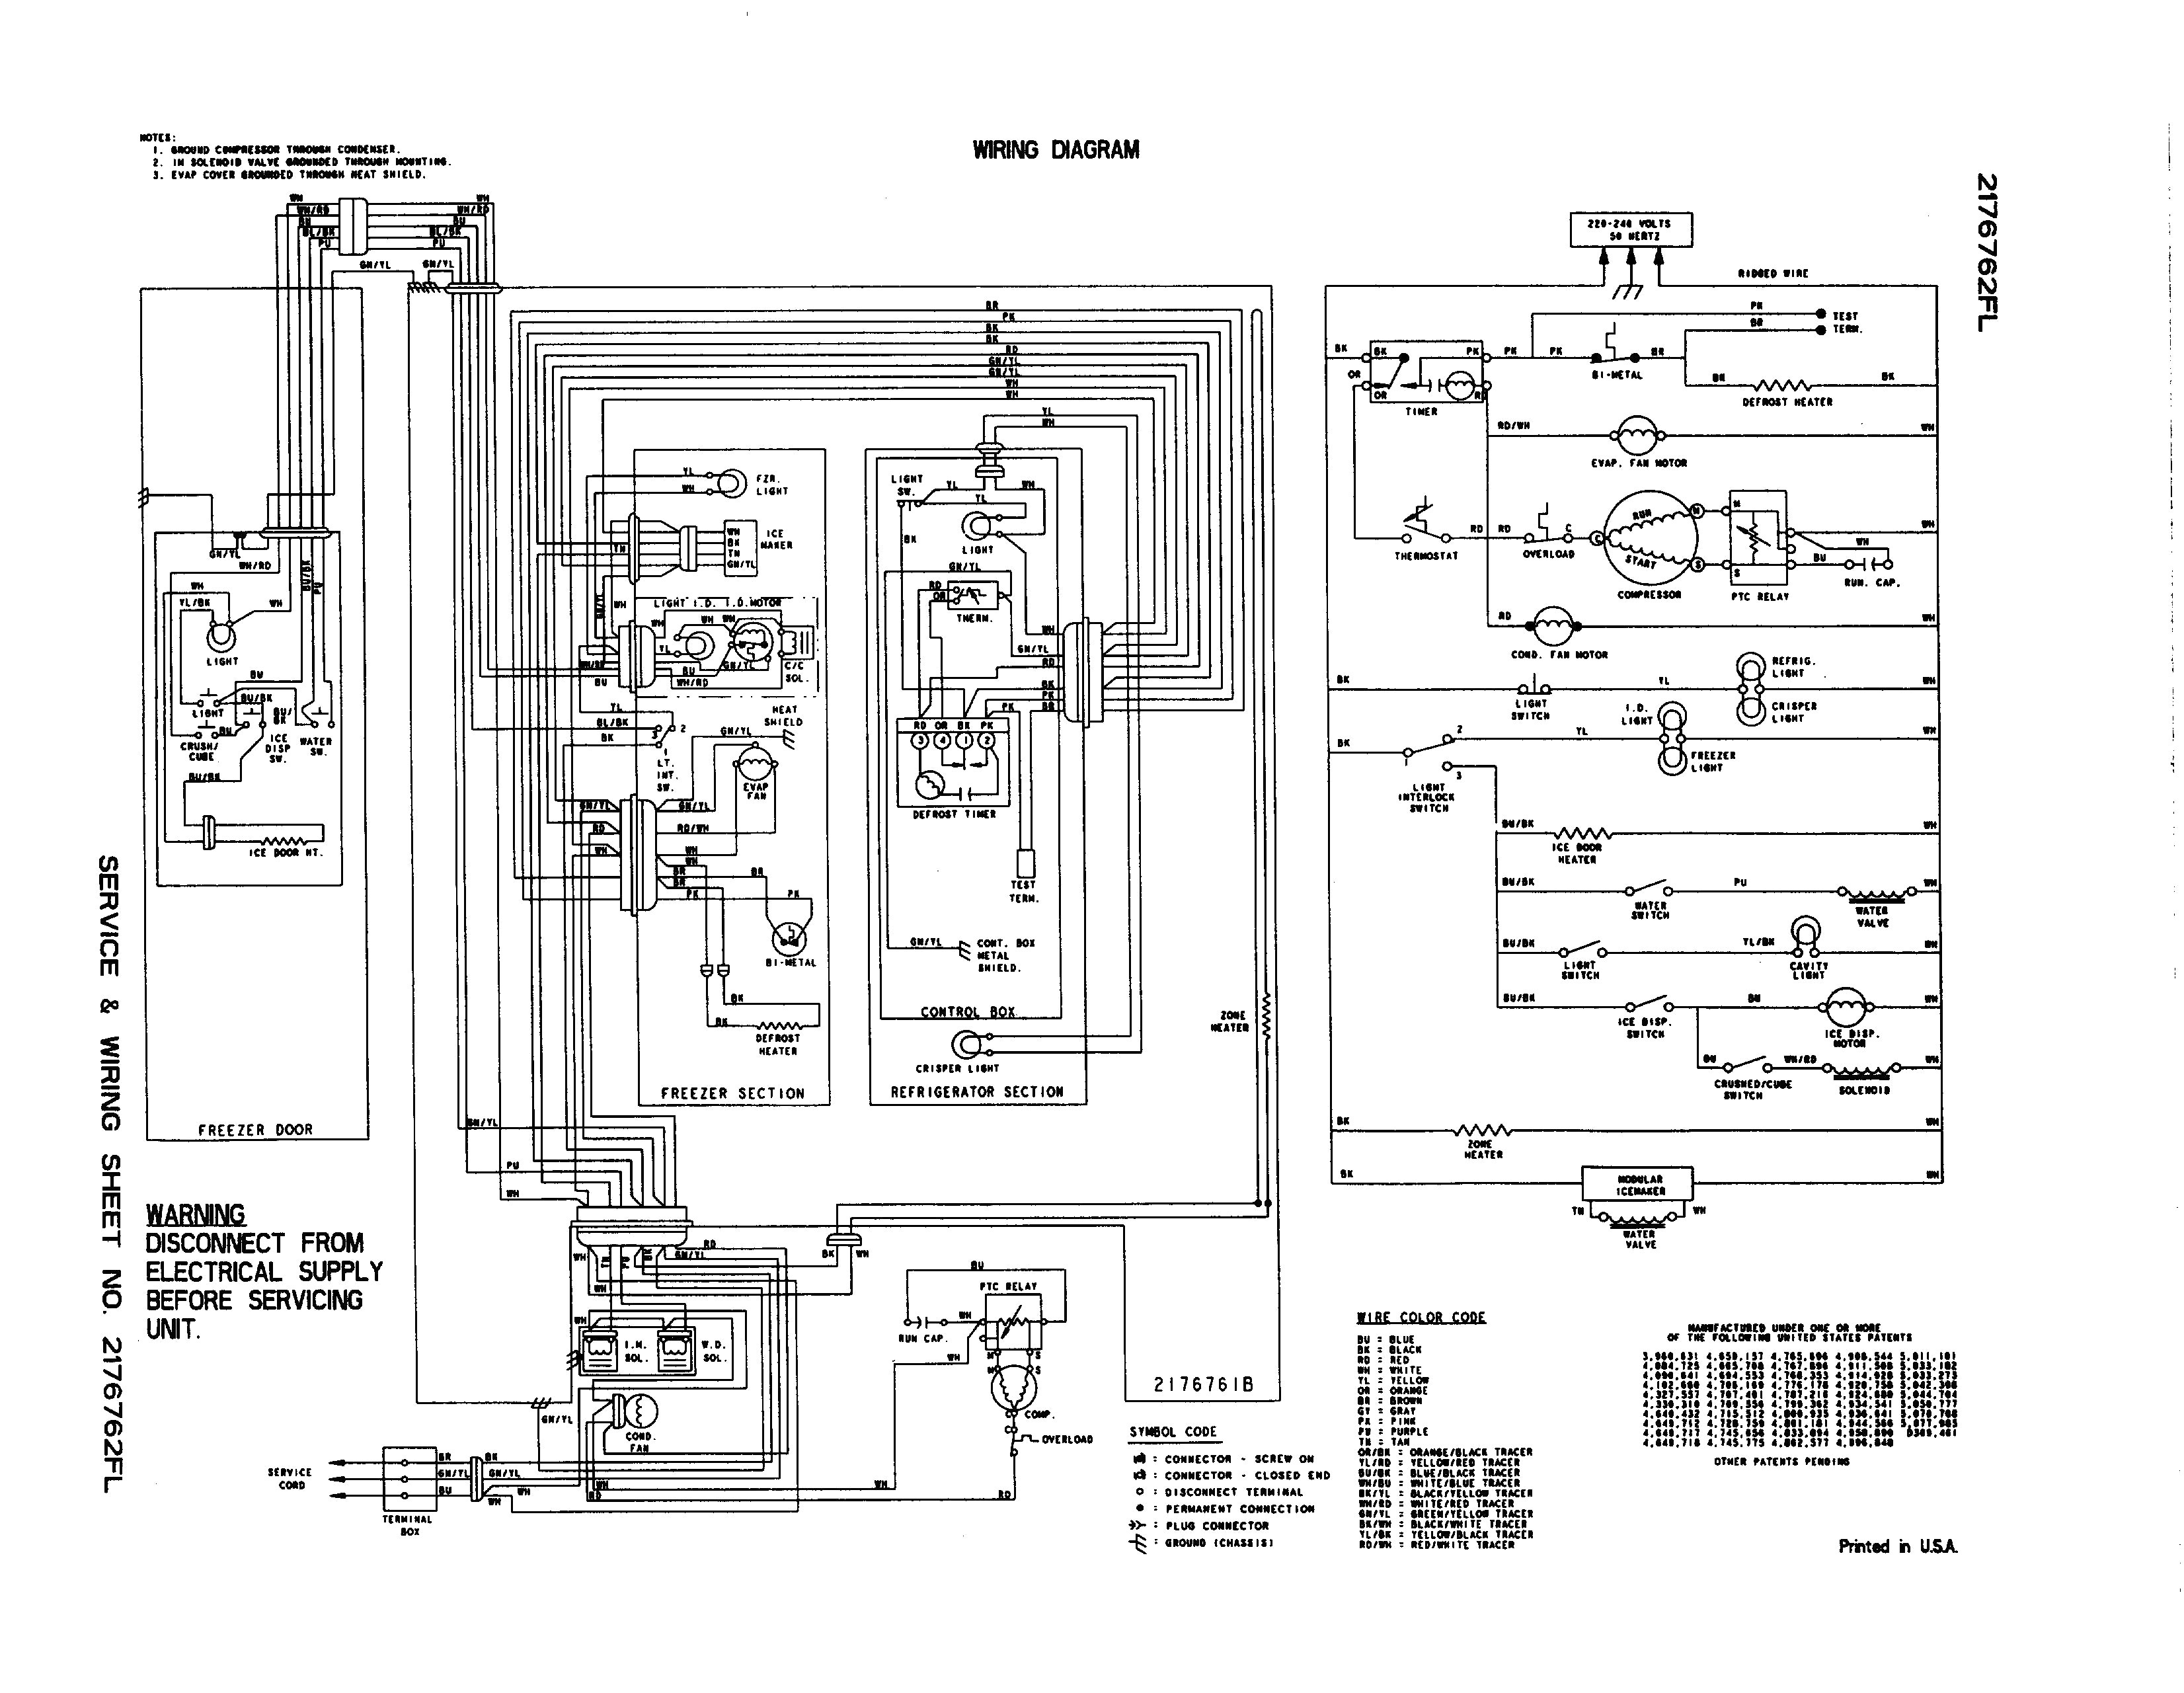 frigidaire ice maker wiring diagram Collection-Ge Refrigerator Wiring Diagram Ice Maker Fresh Whirlpool Refrigerator Wiring Diagram Electrical Schematic For 2-o